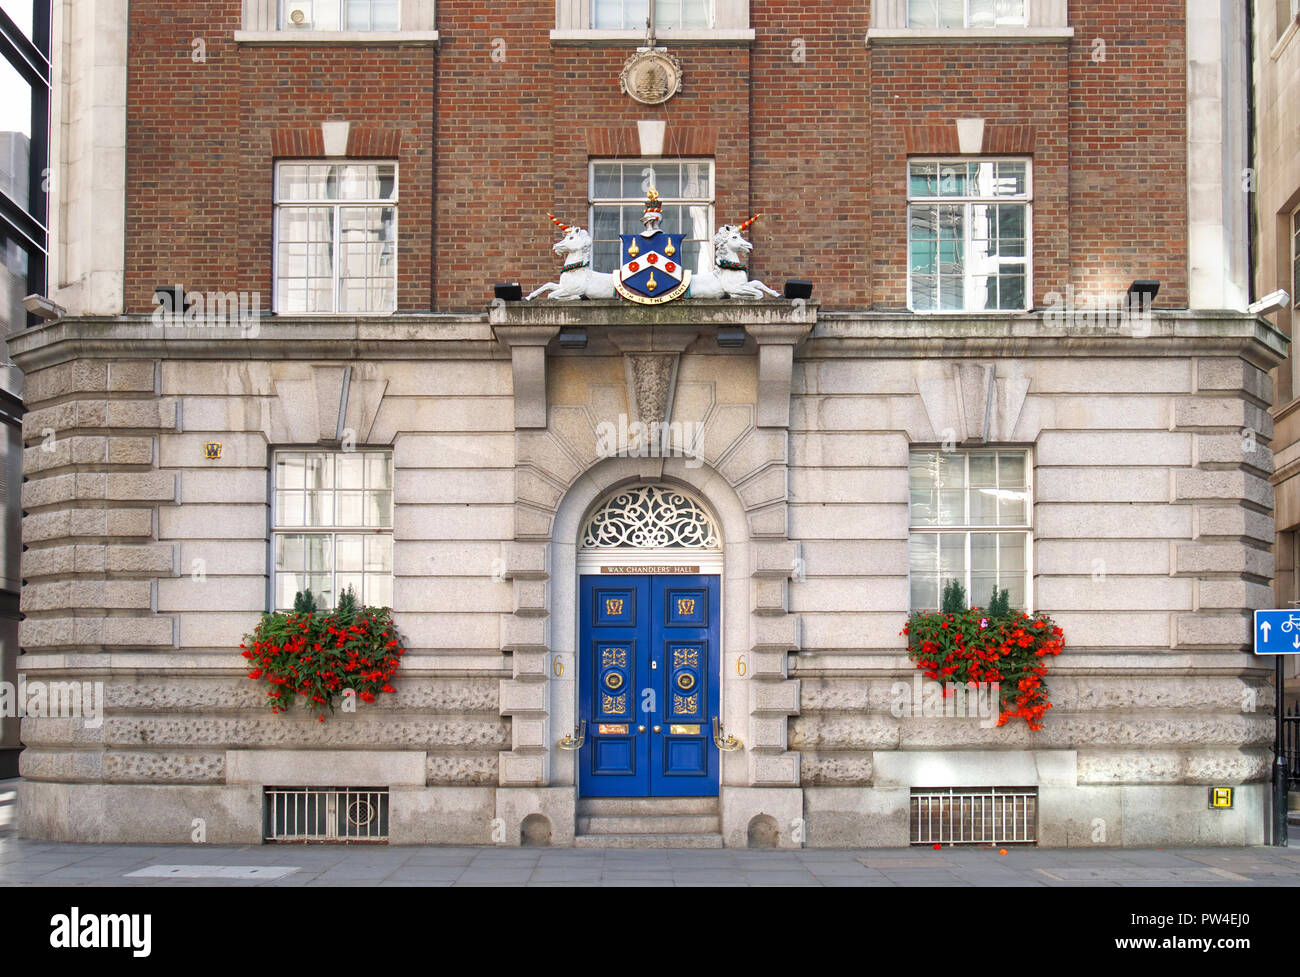 The Wax Chandlers' Hall, Gresham Street, London - Stock Image